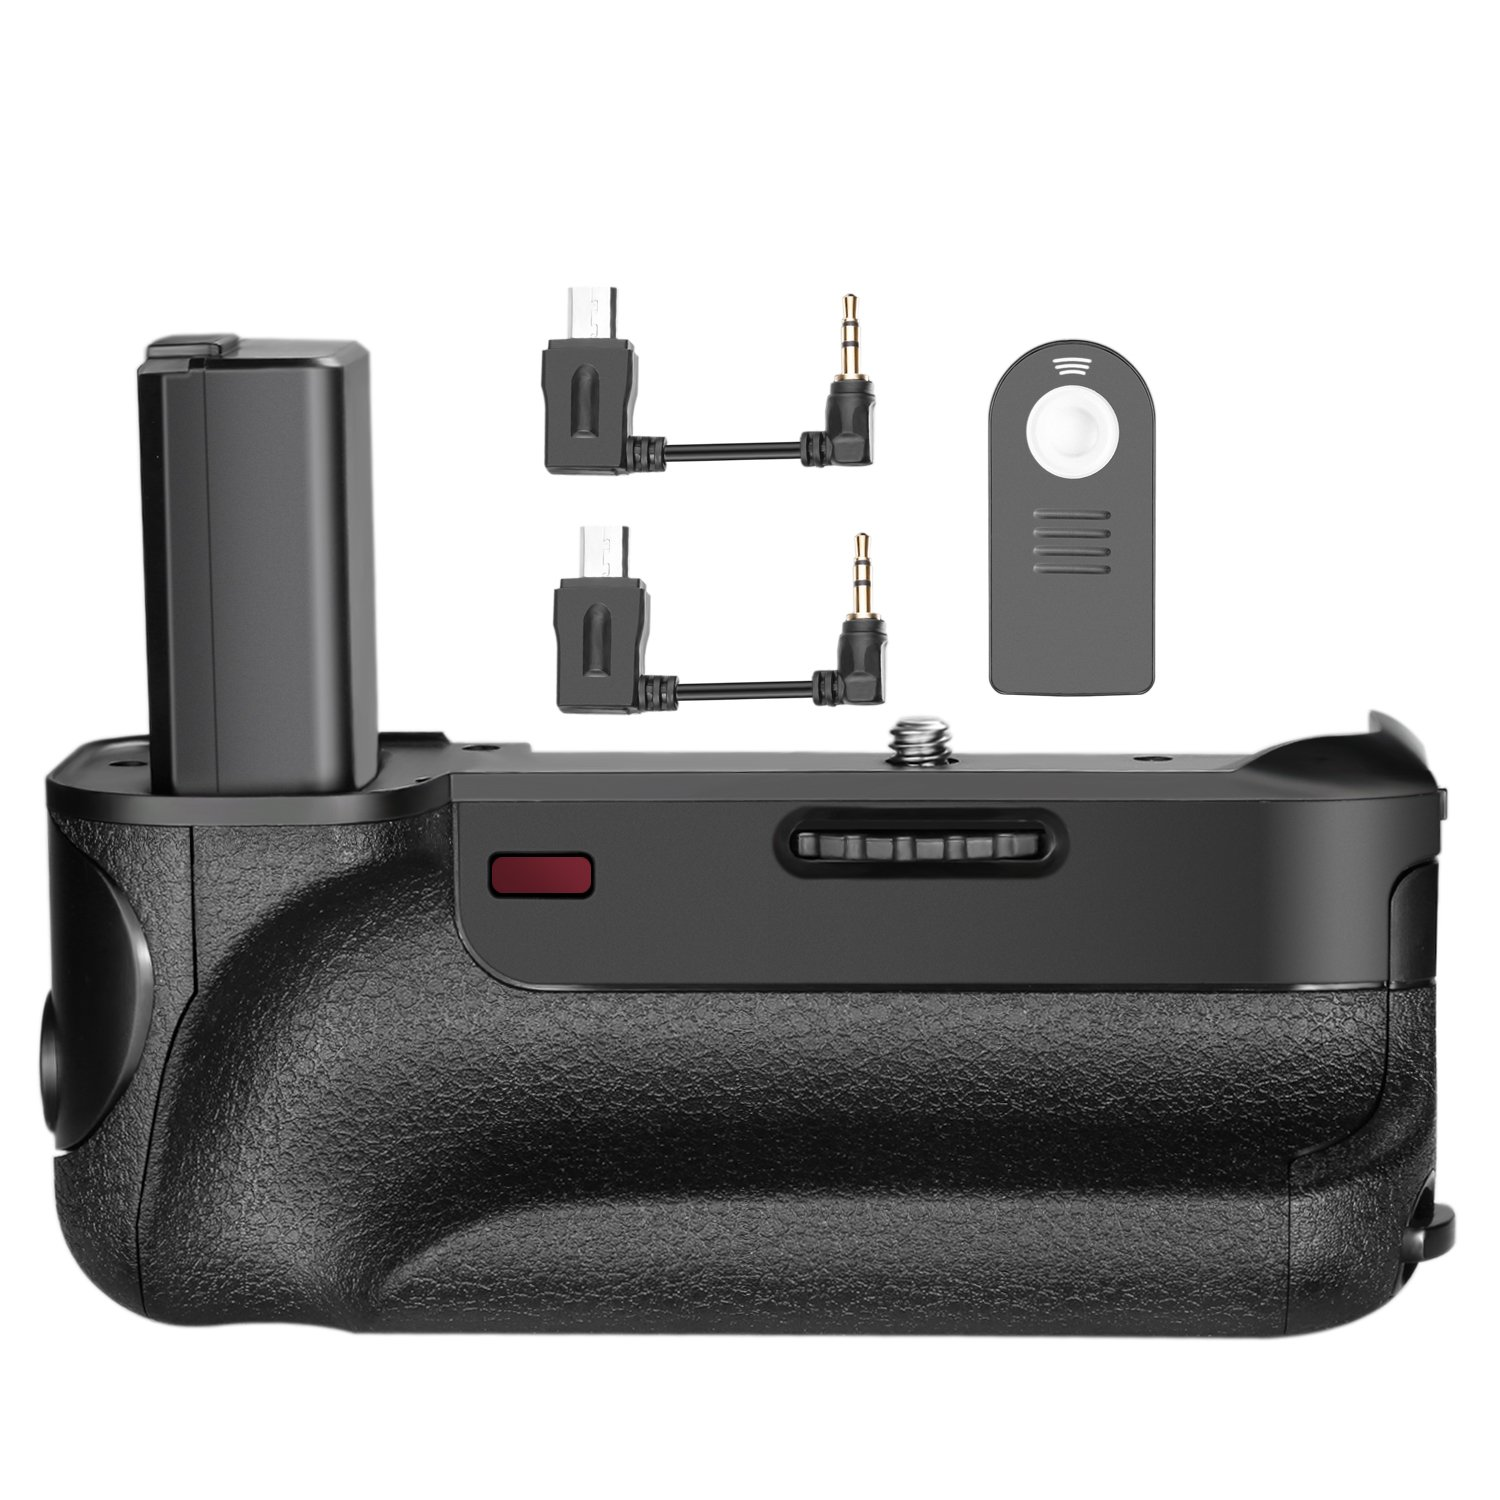 Neewer Pro Vertical Battery Grip Holder IR Infrared Remote Control for Sony A6000 and A6300 Mirrorless Camera, Work with 1 or 2 Pack NP-FW50 Li-ion Battery (Battery NOT Included)